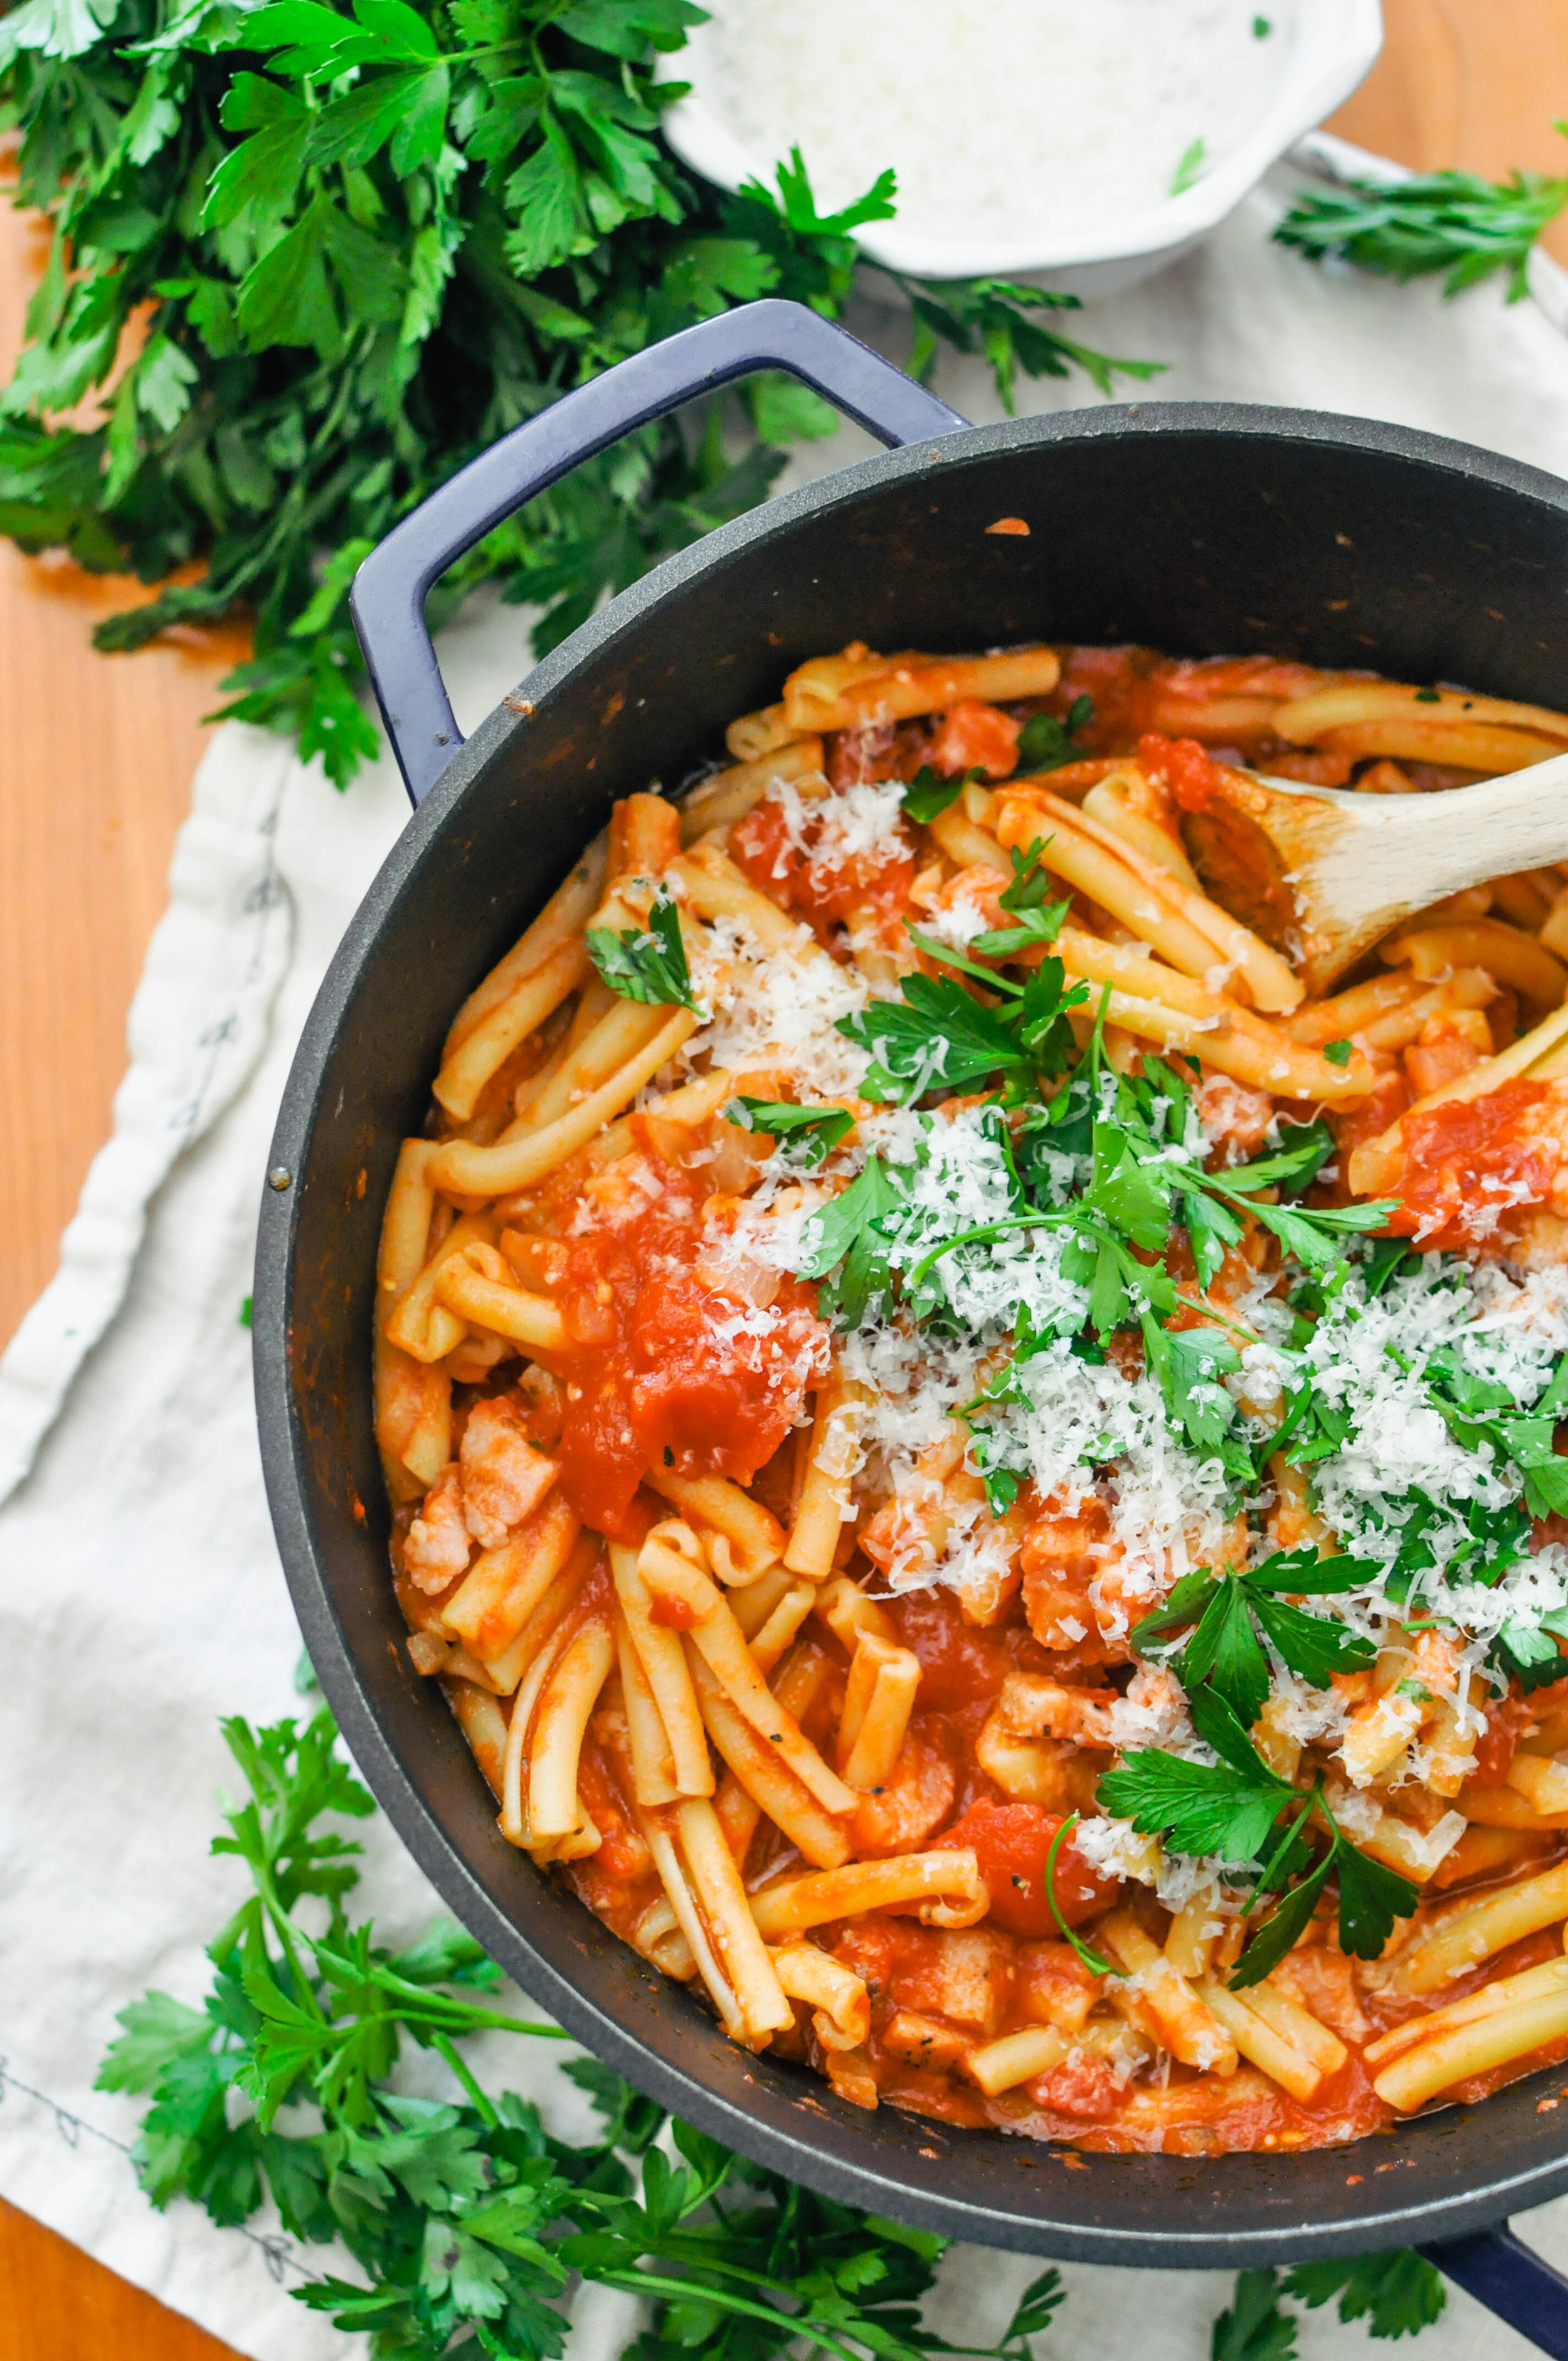 Pasta Alla Mosca - a quick, delicious weeknight meal from This Healthy Table #pasta #dinner #tomatoes